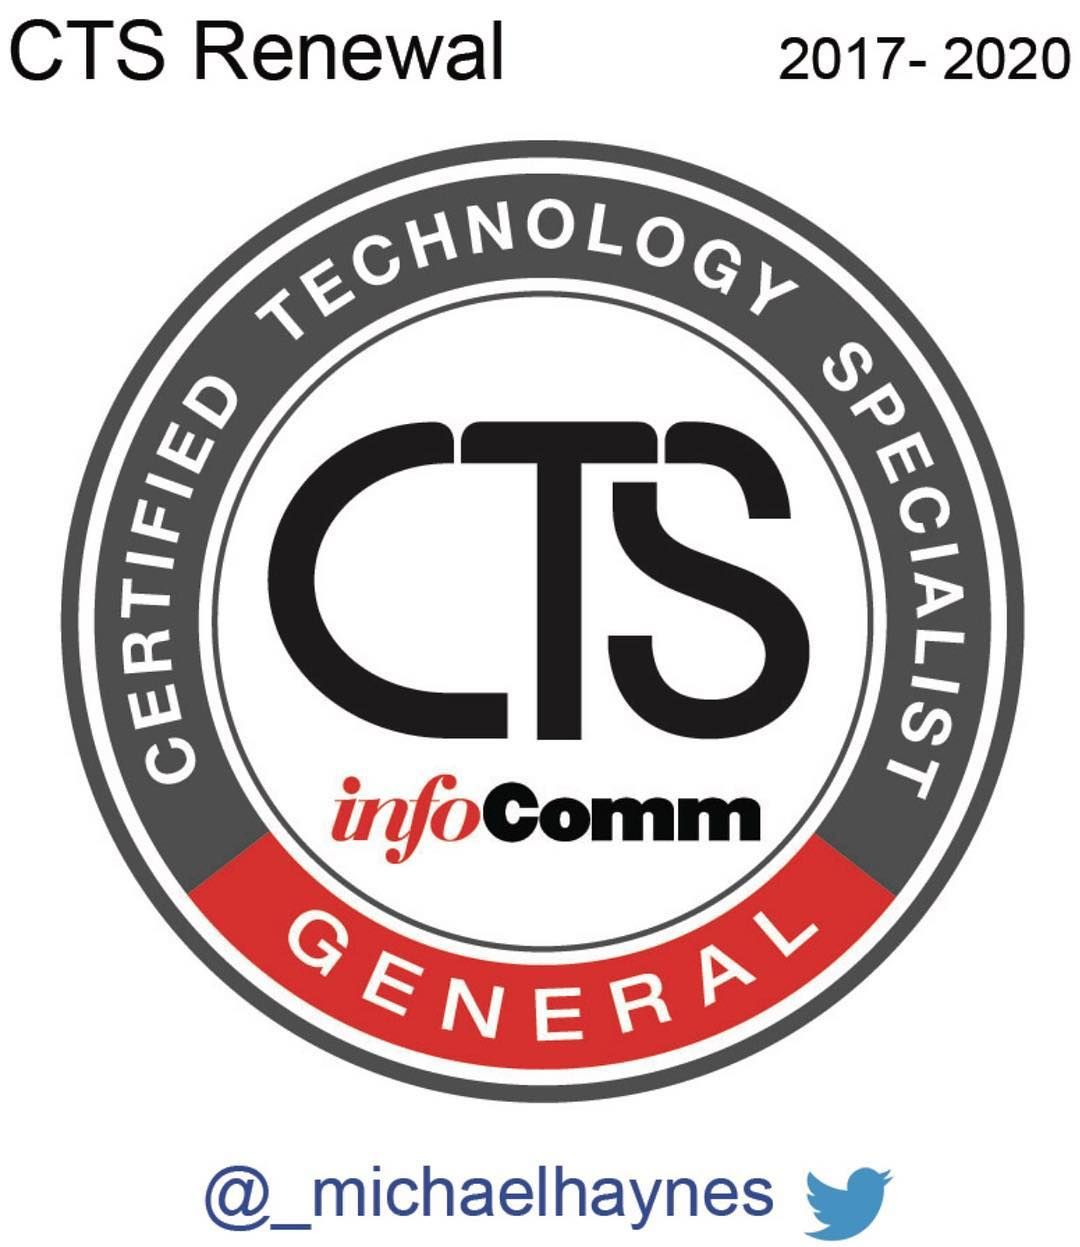 I just renewed my Infocomm CTS certification for another three years ...